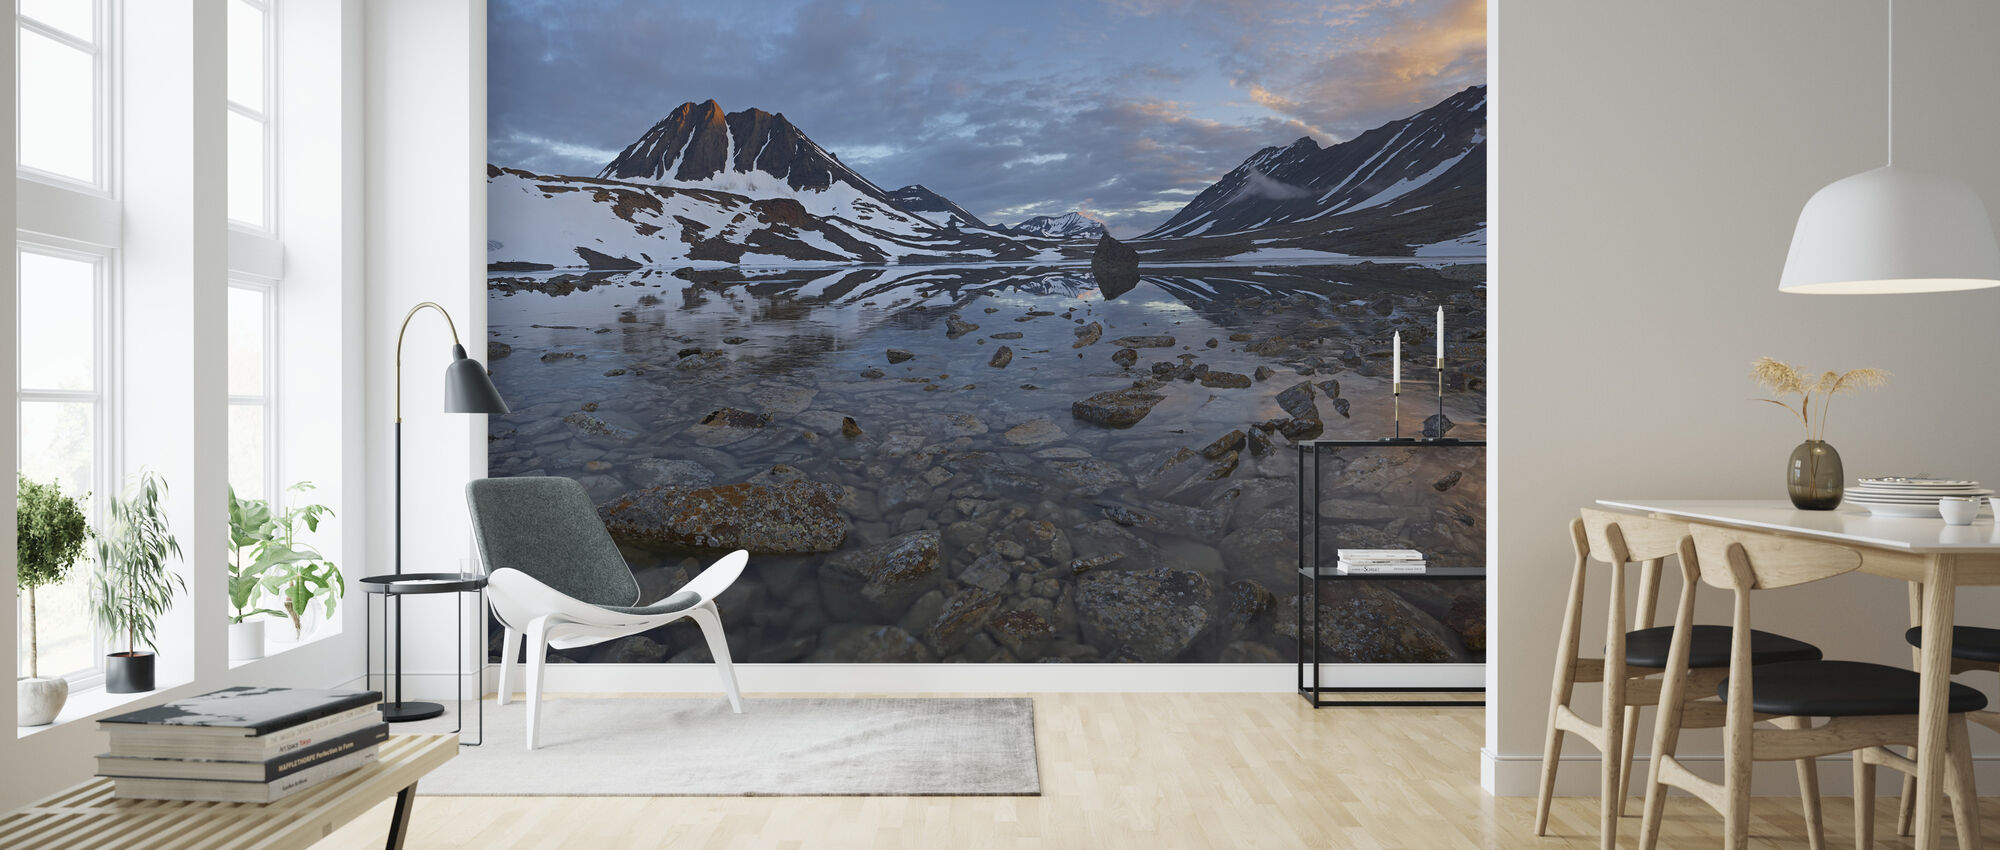 Morning in Lapland Mountains, Sweden - Wallpaper - Living Room